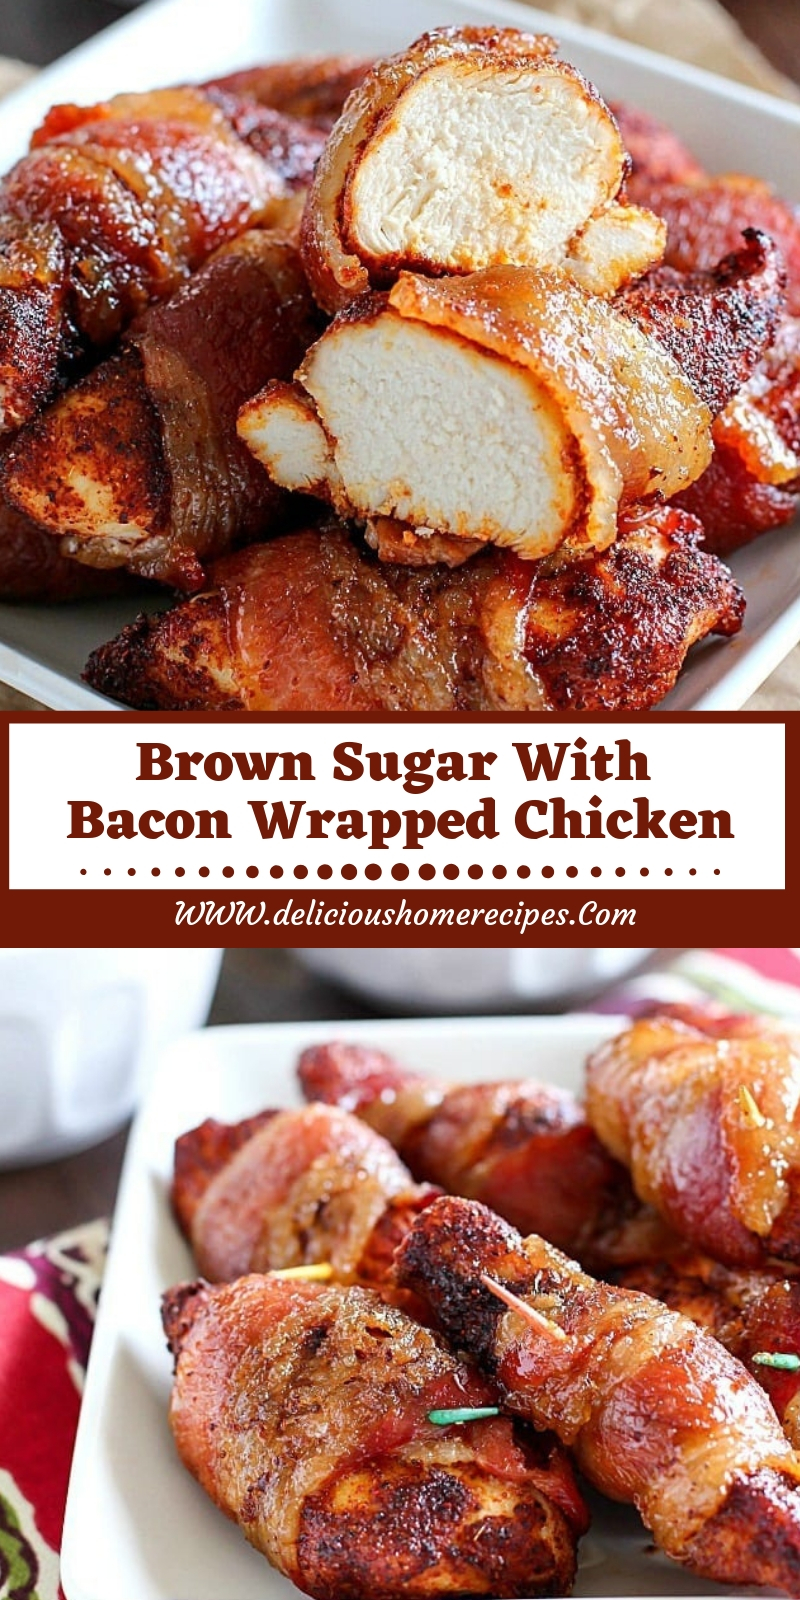 Brown Sugar With Bacon Wrapped Chicken